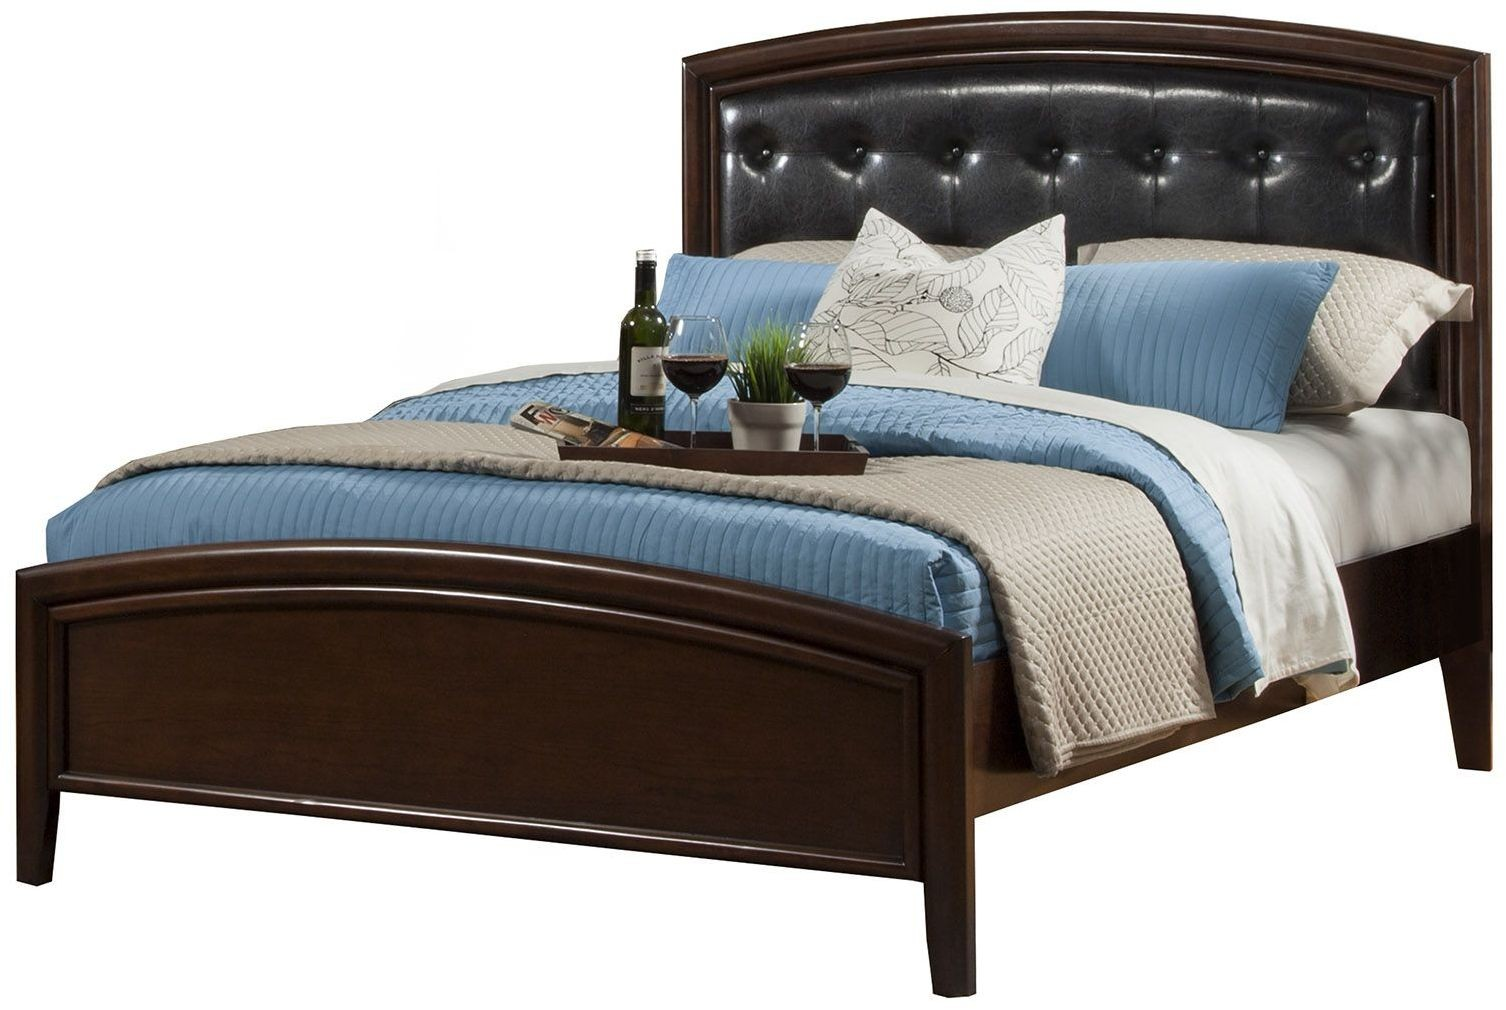 how to make a platform bed from a regular bed